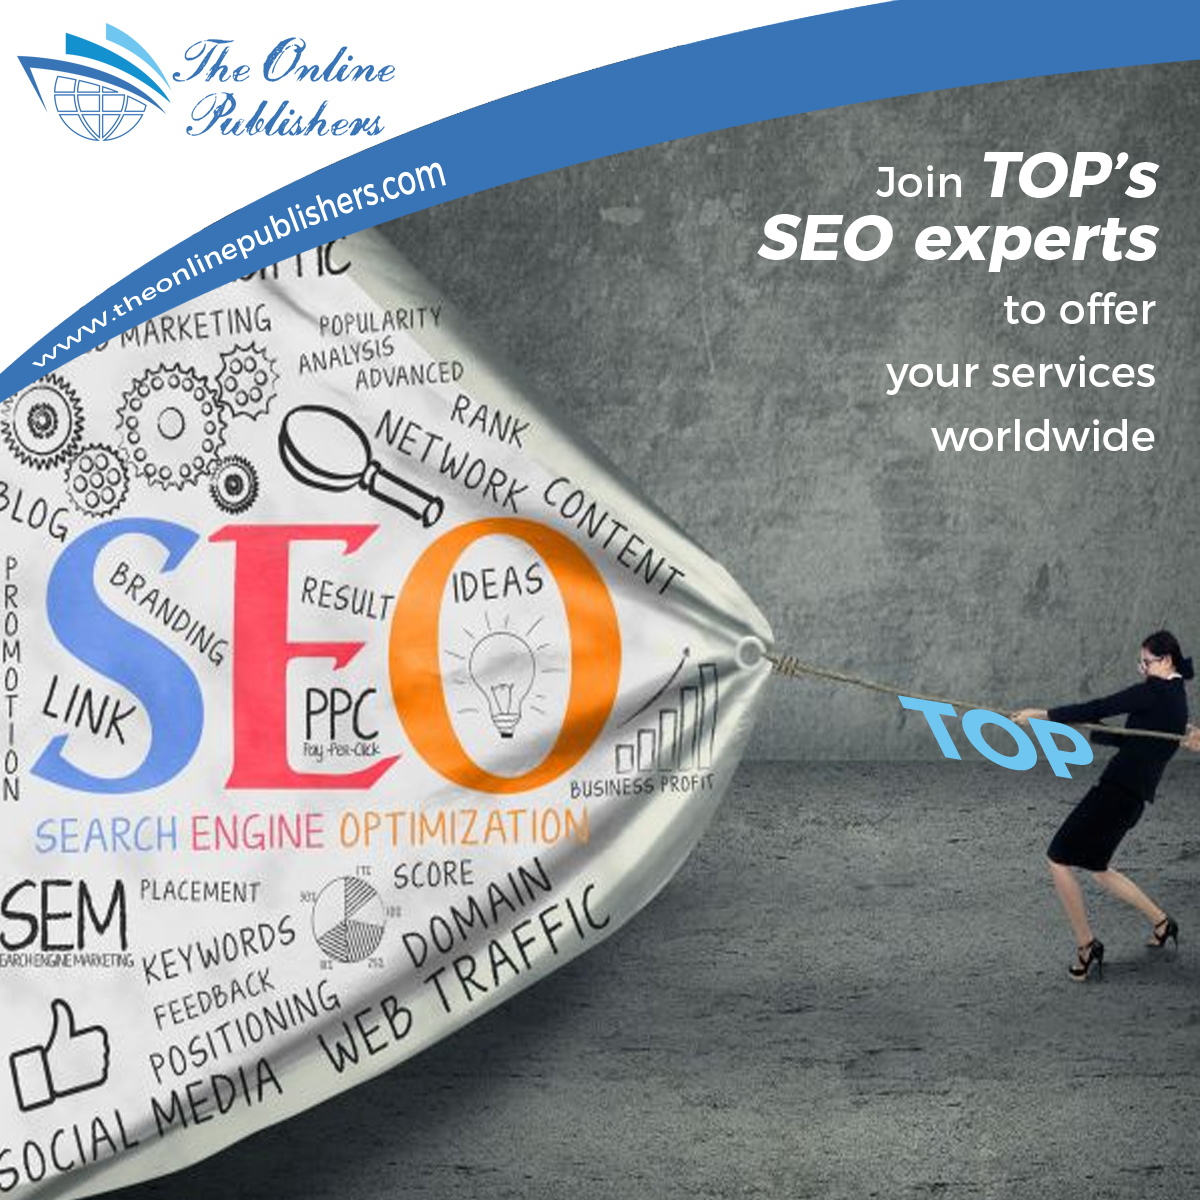 The Online Publishers SEO